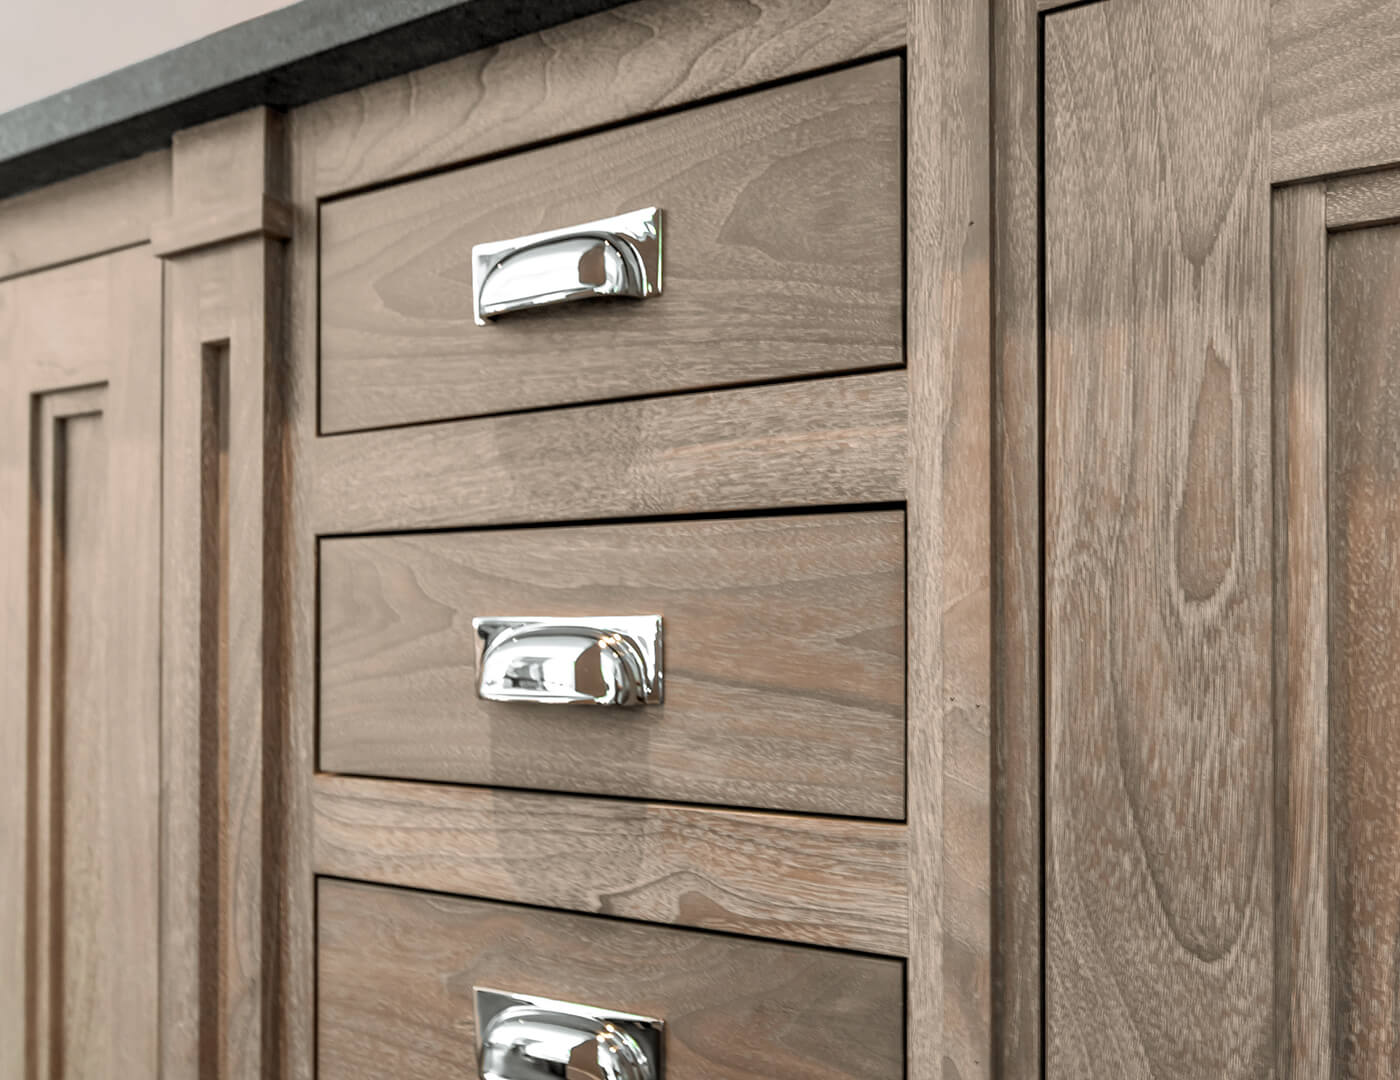 Walnut cabinets with meridian profile and polished nickel finishes